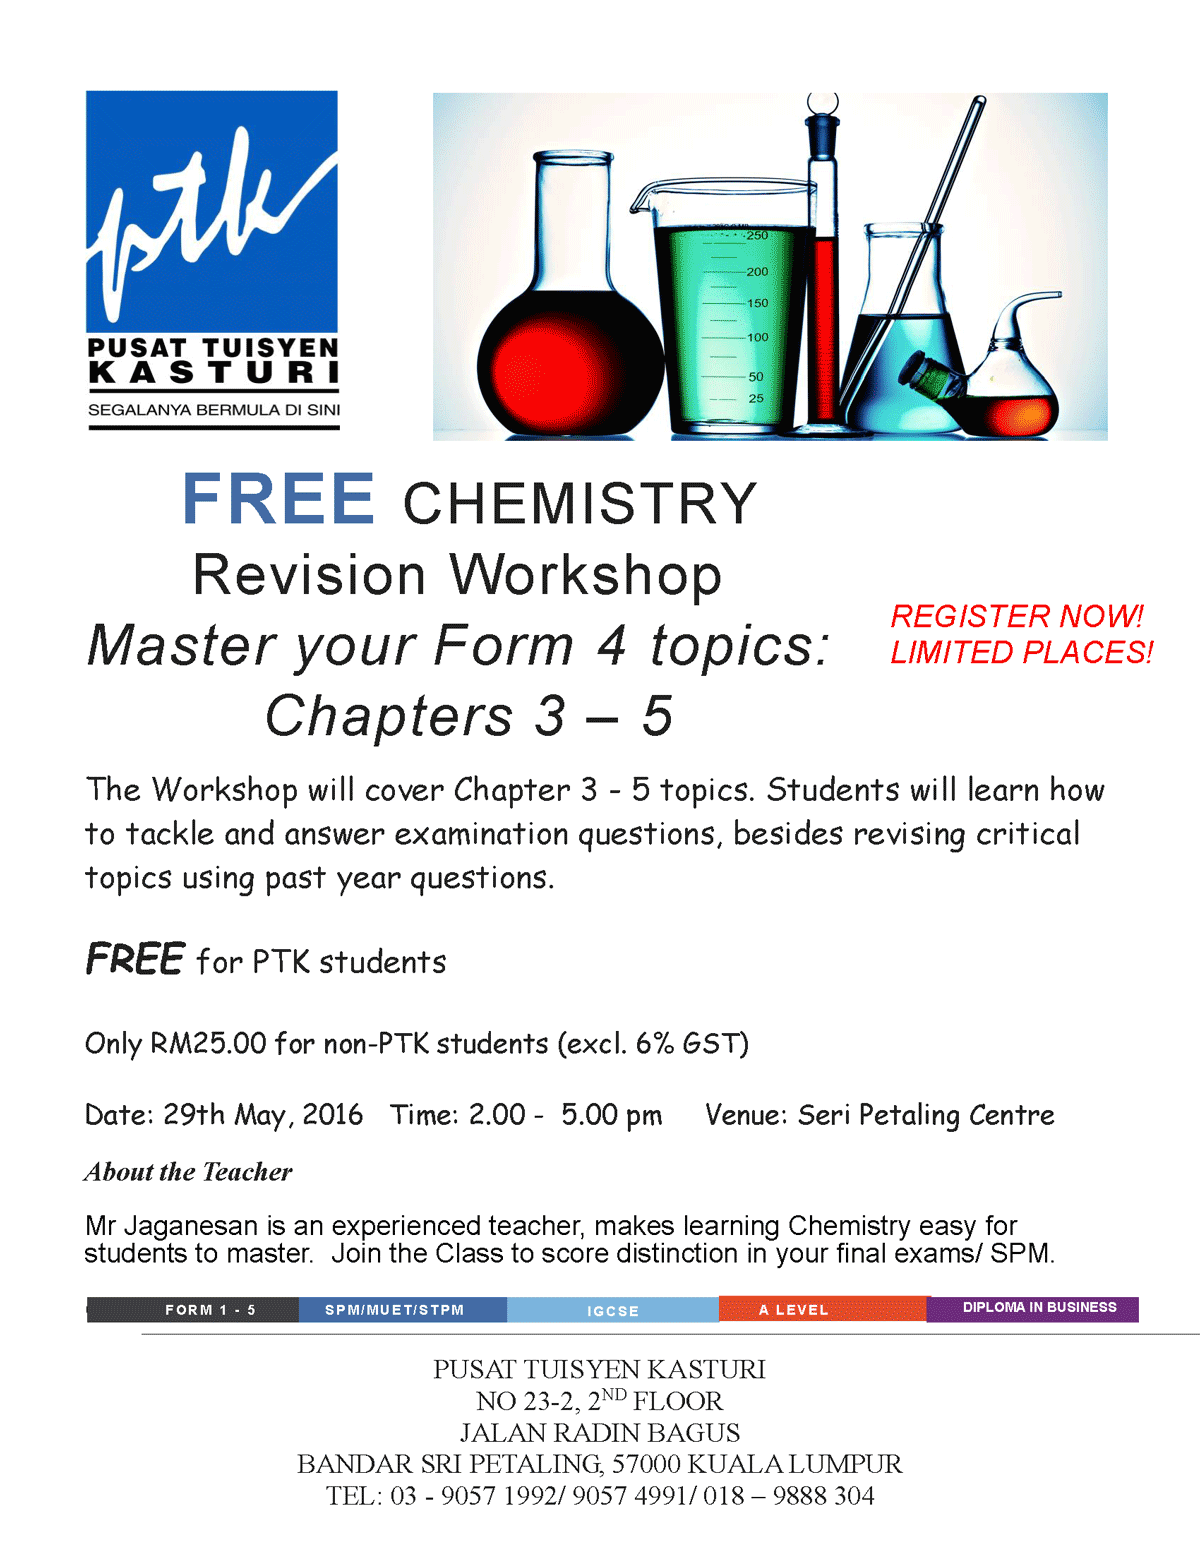 Free Chemistry Revision Workshop from Pusat Tuisyen Kasturi PTK